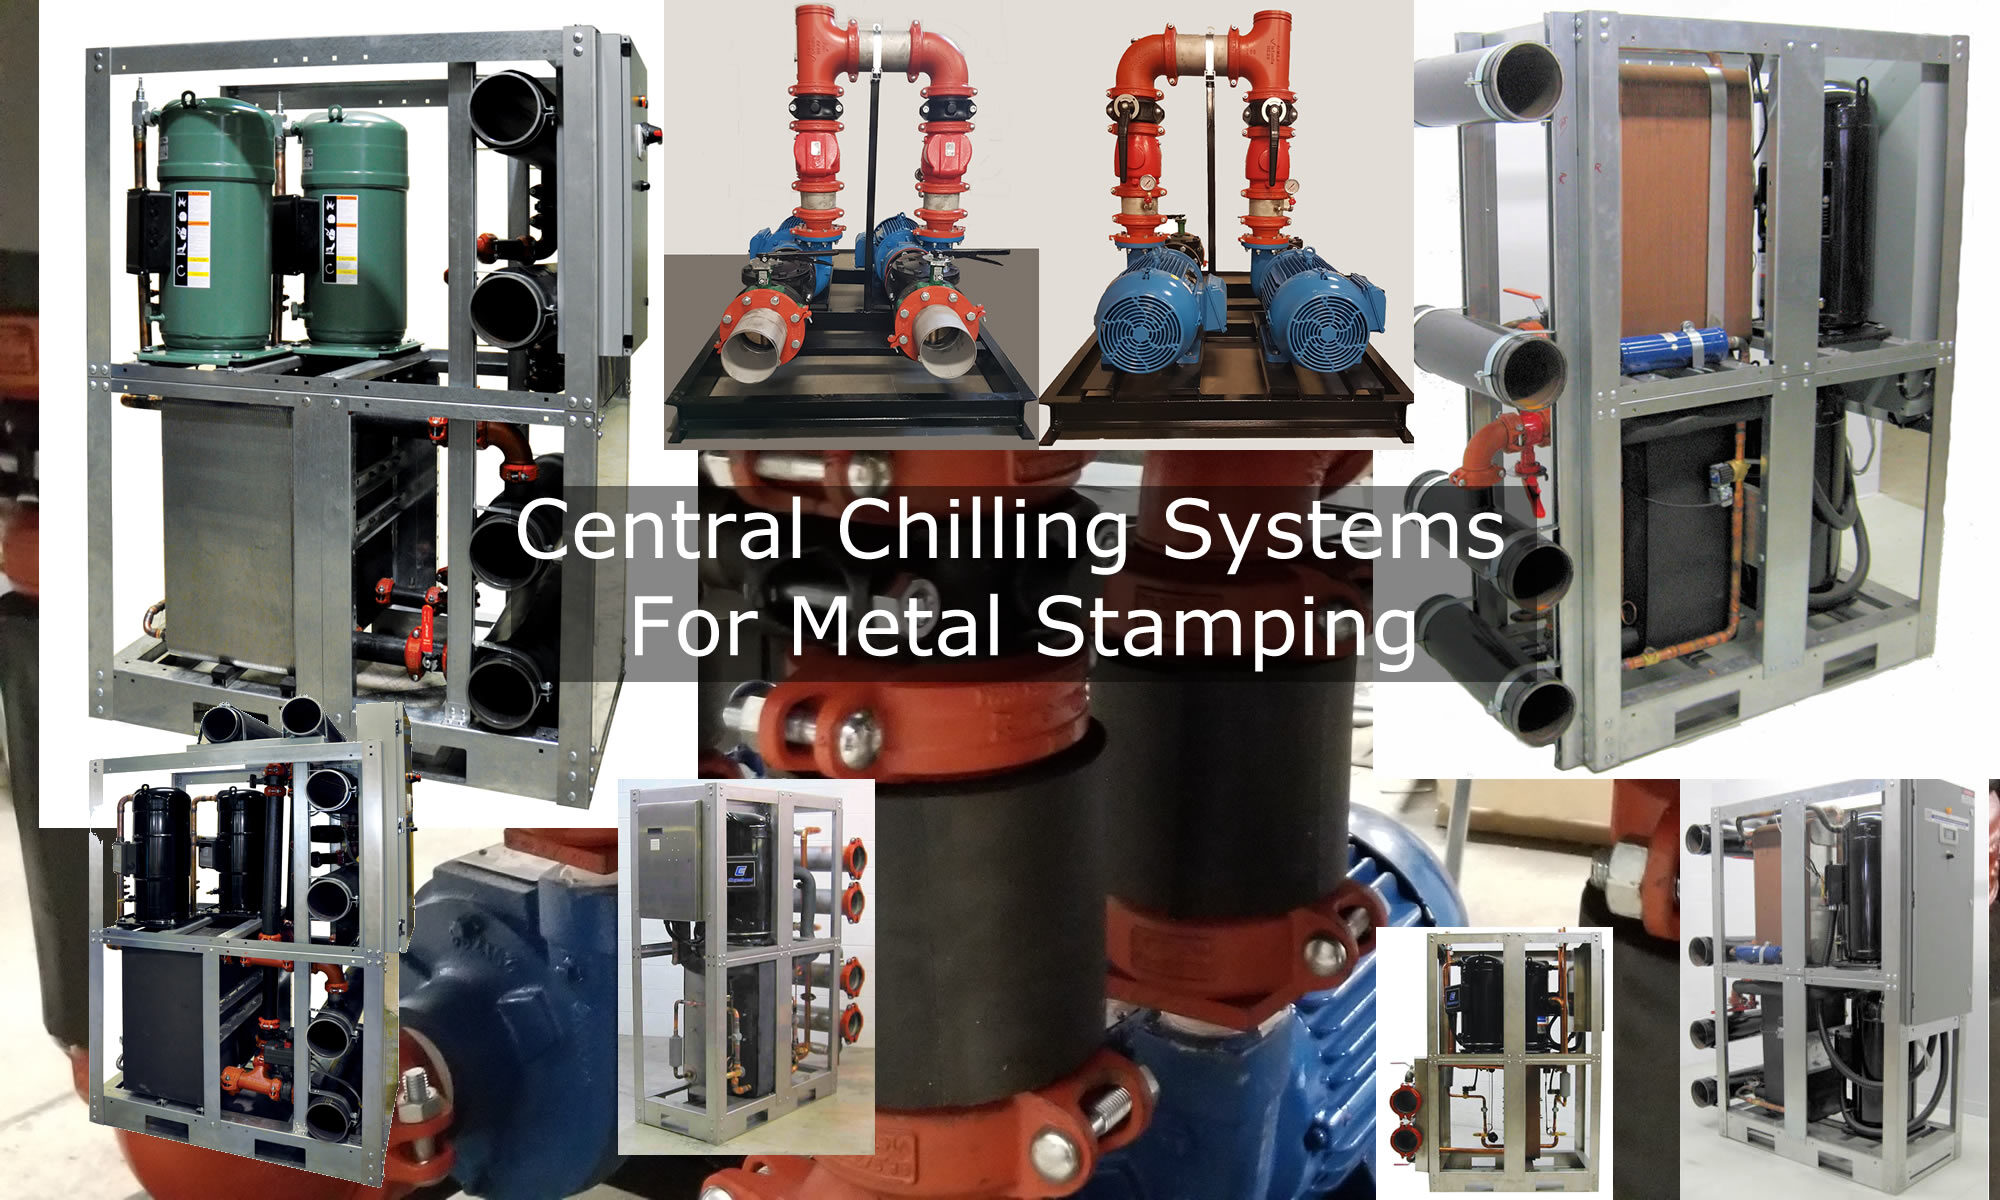 Central Chilling Systems For Metal Stamping